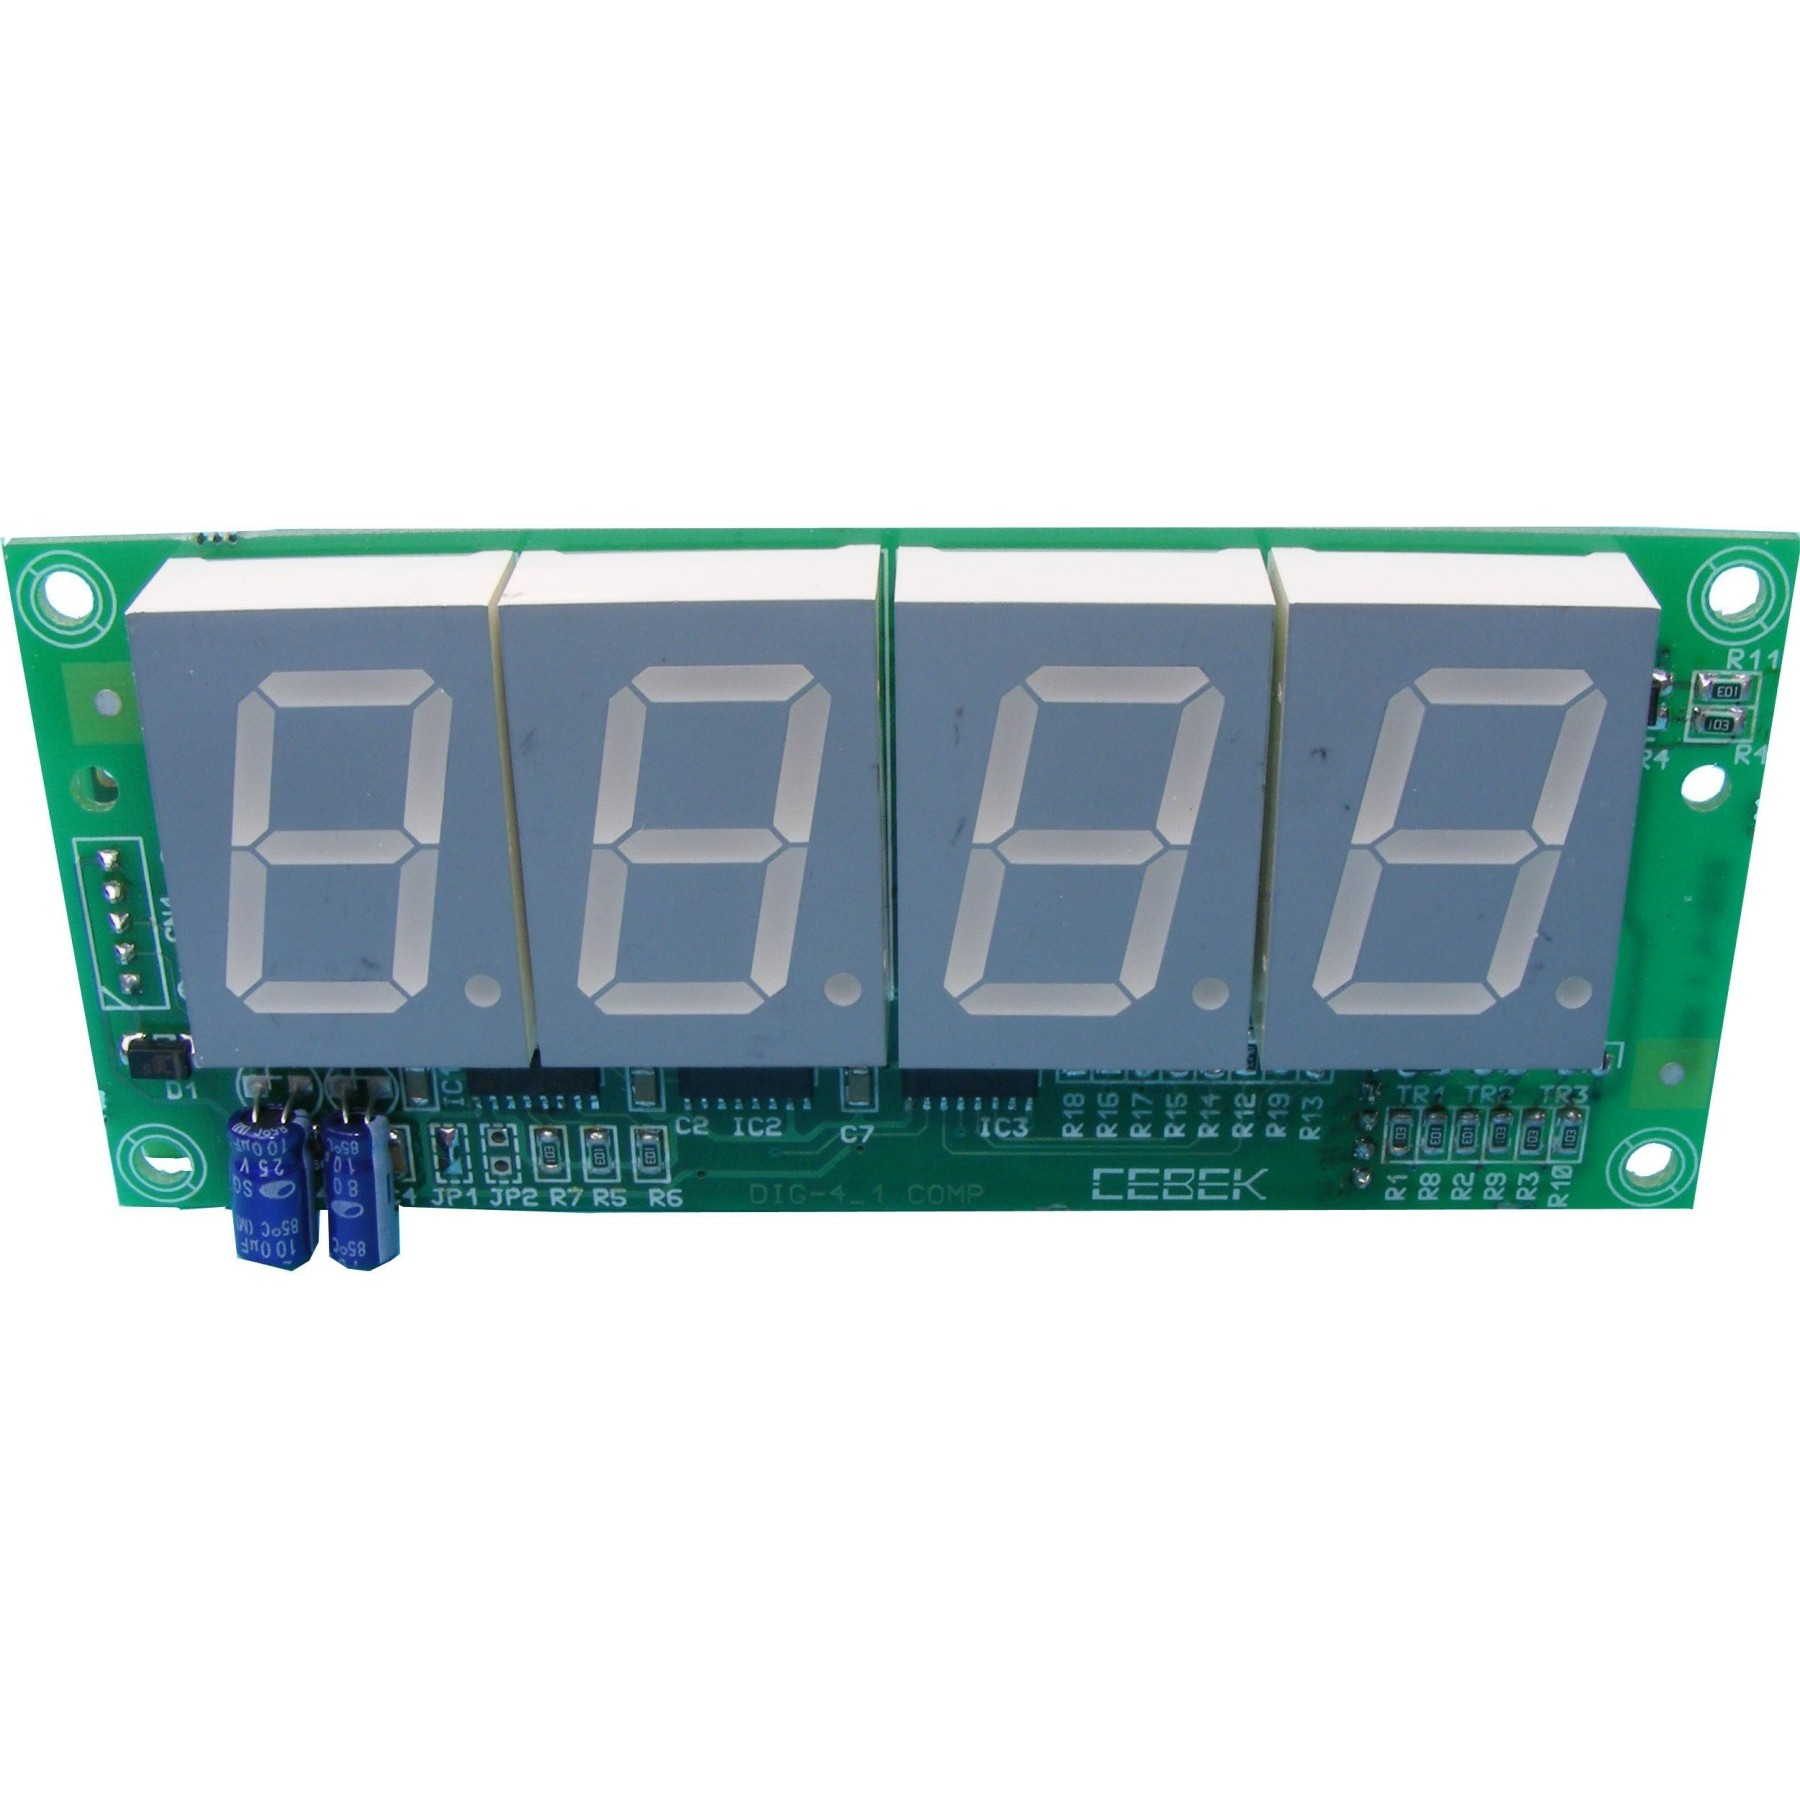 Counter 9999 Units 12 V CD-7 CEBEK